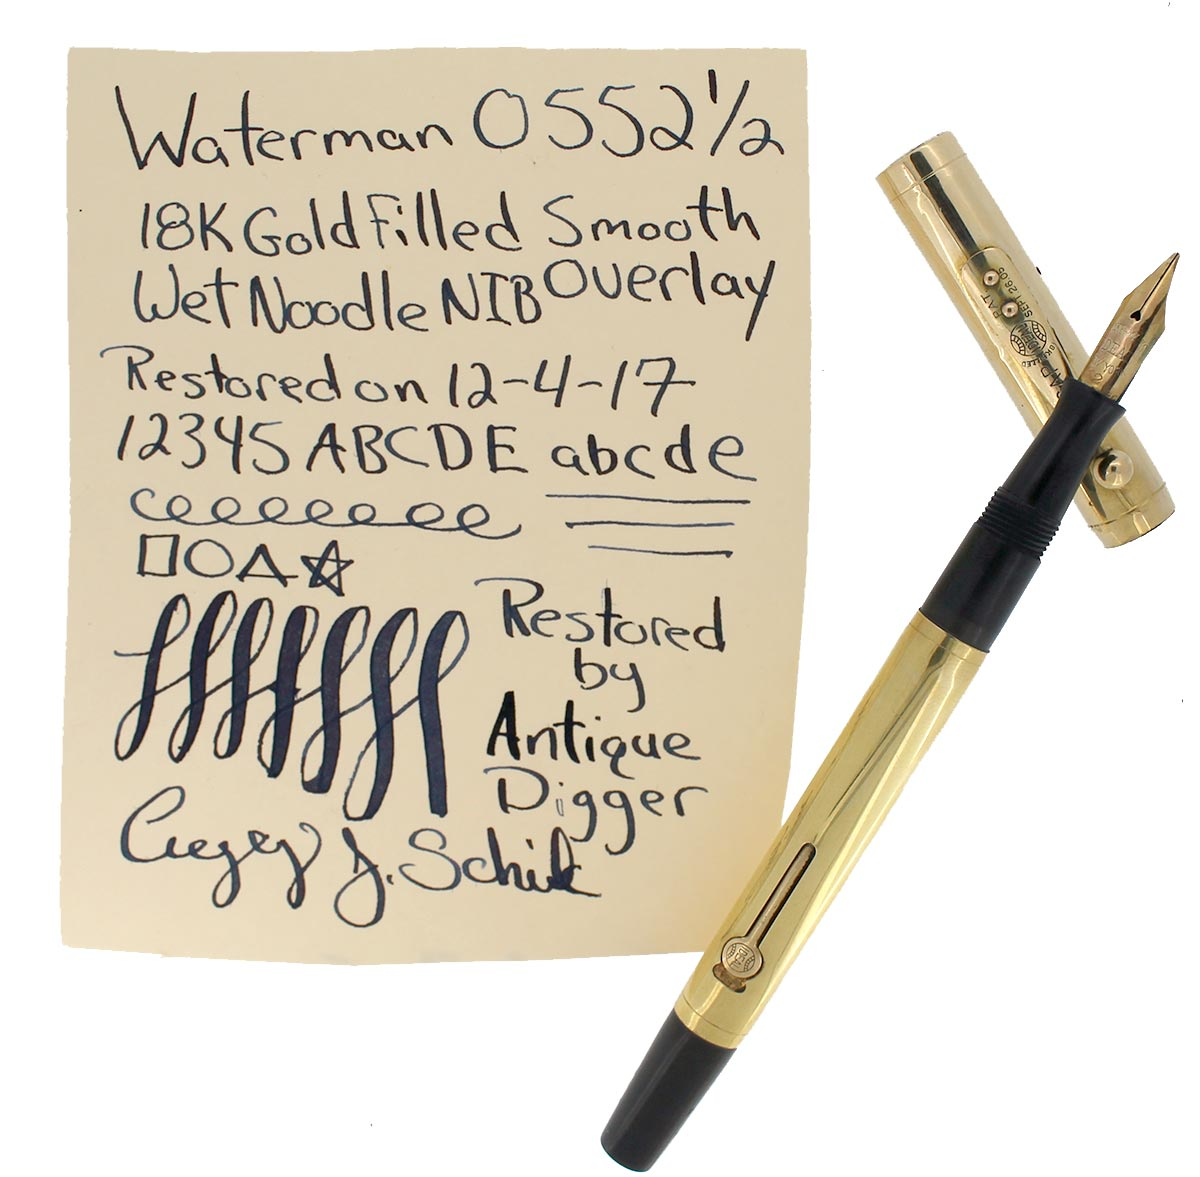 1920s WATERMAN 0552 1/2 SMOOTH GOLD OVERLAY FOUNTAIN PEN XXF - BBB 2.6MM FLEX NIB RESTORED OFFERED BY ANTIQUE DIGGER